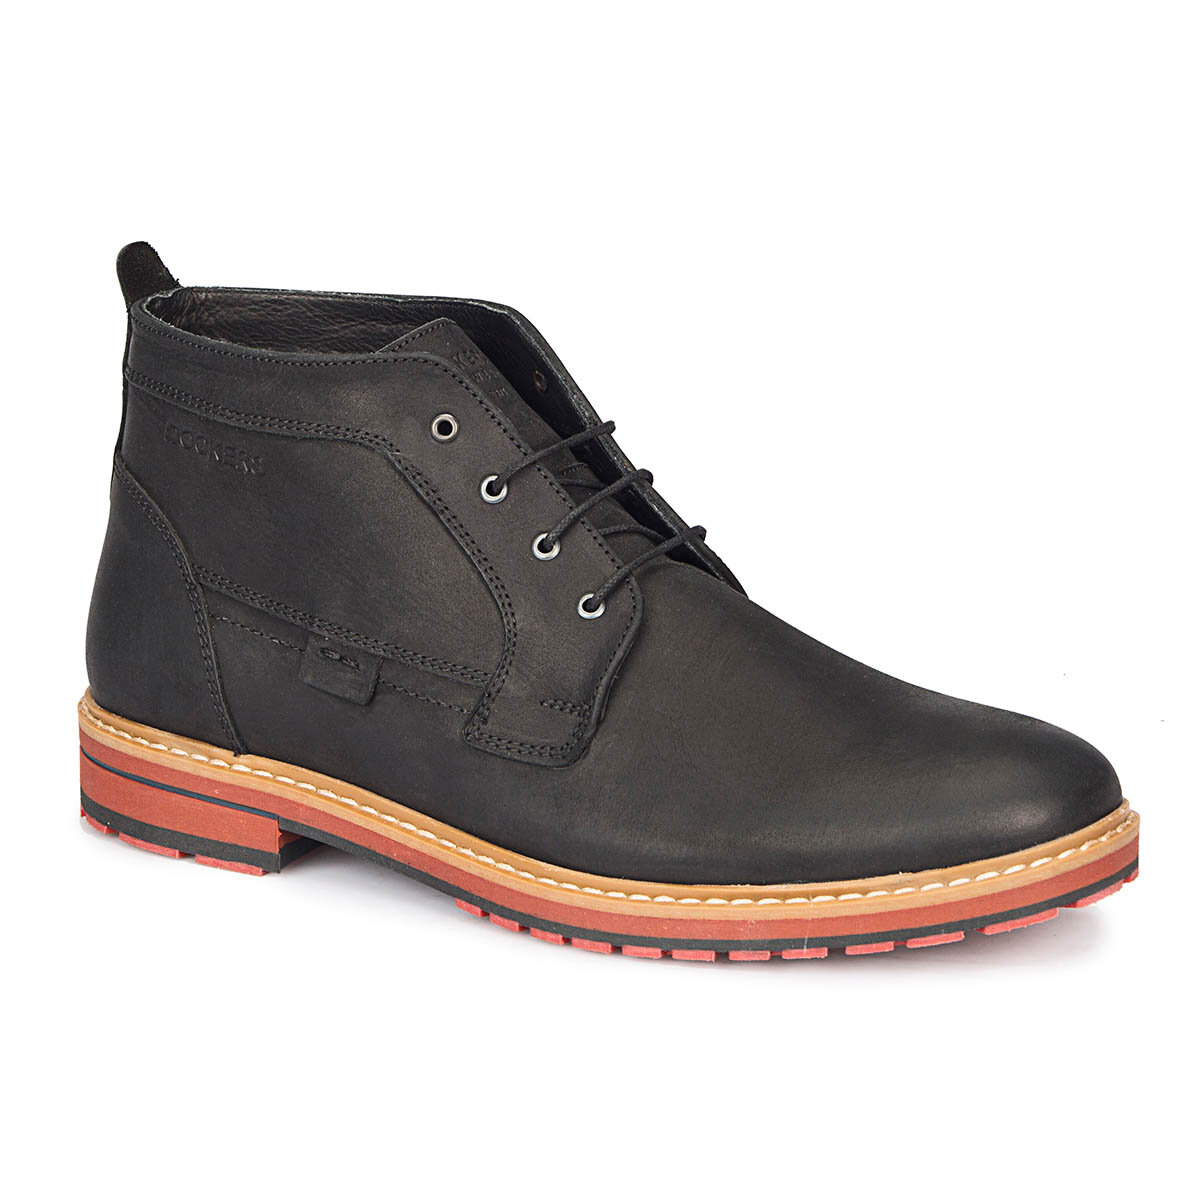 FLO 219430 Black Men Boots By Dockers The Gerle